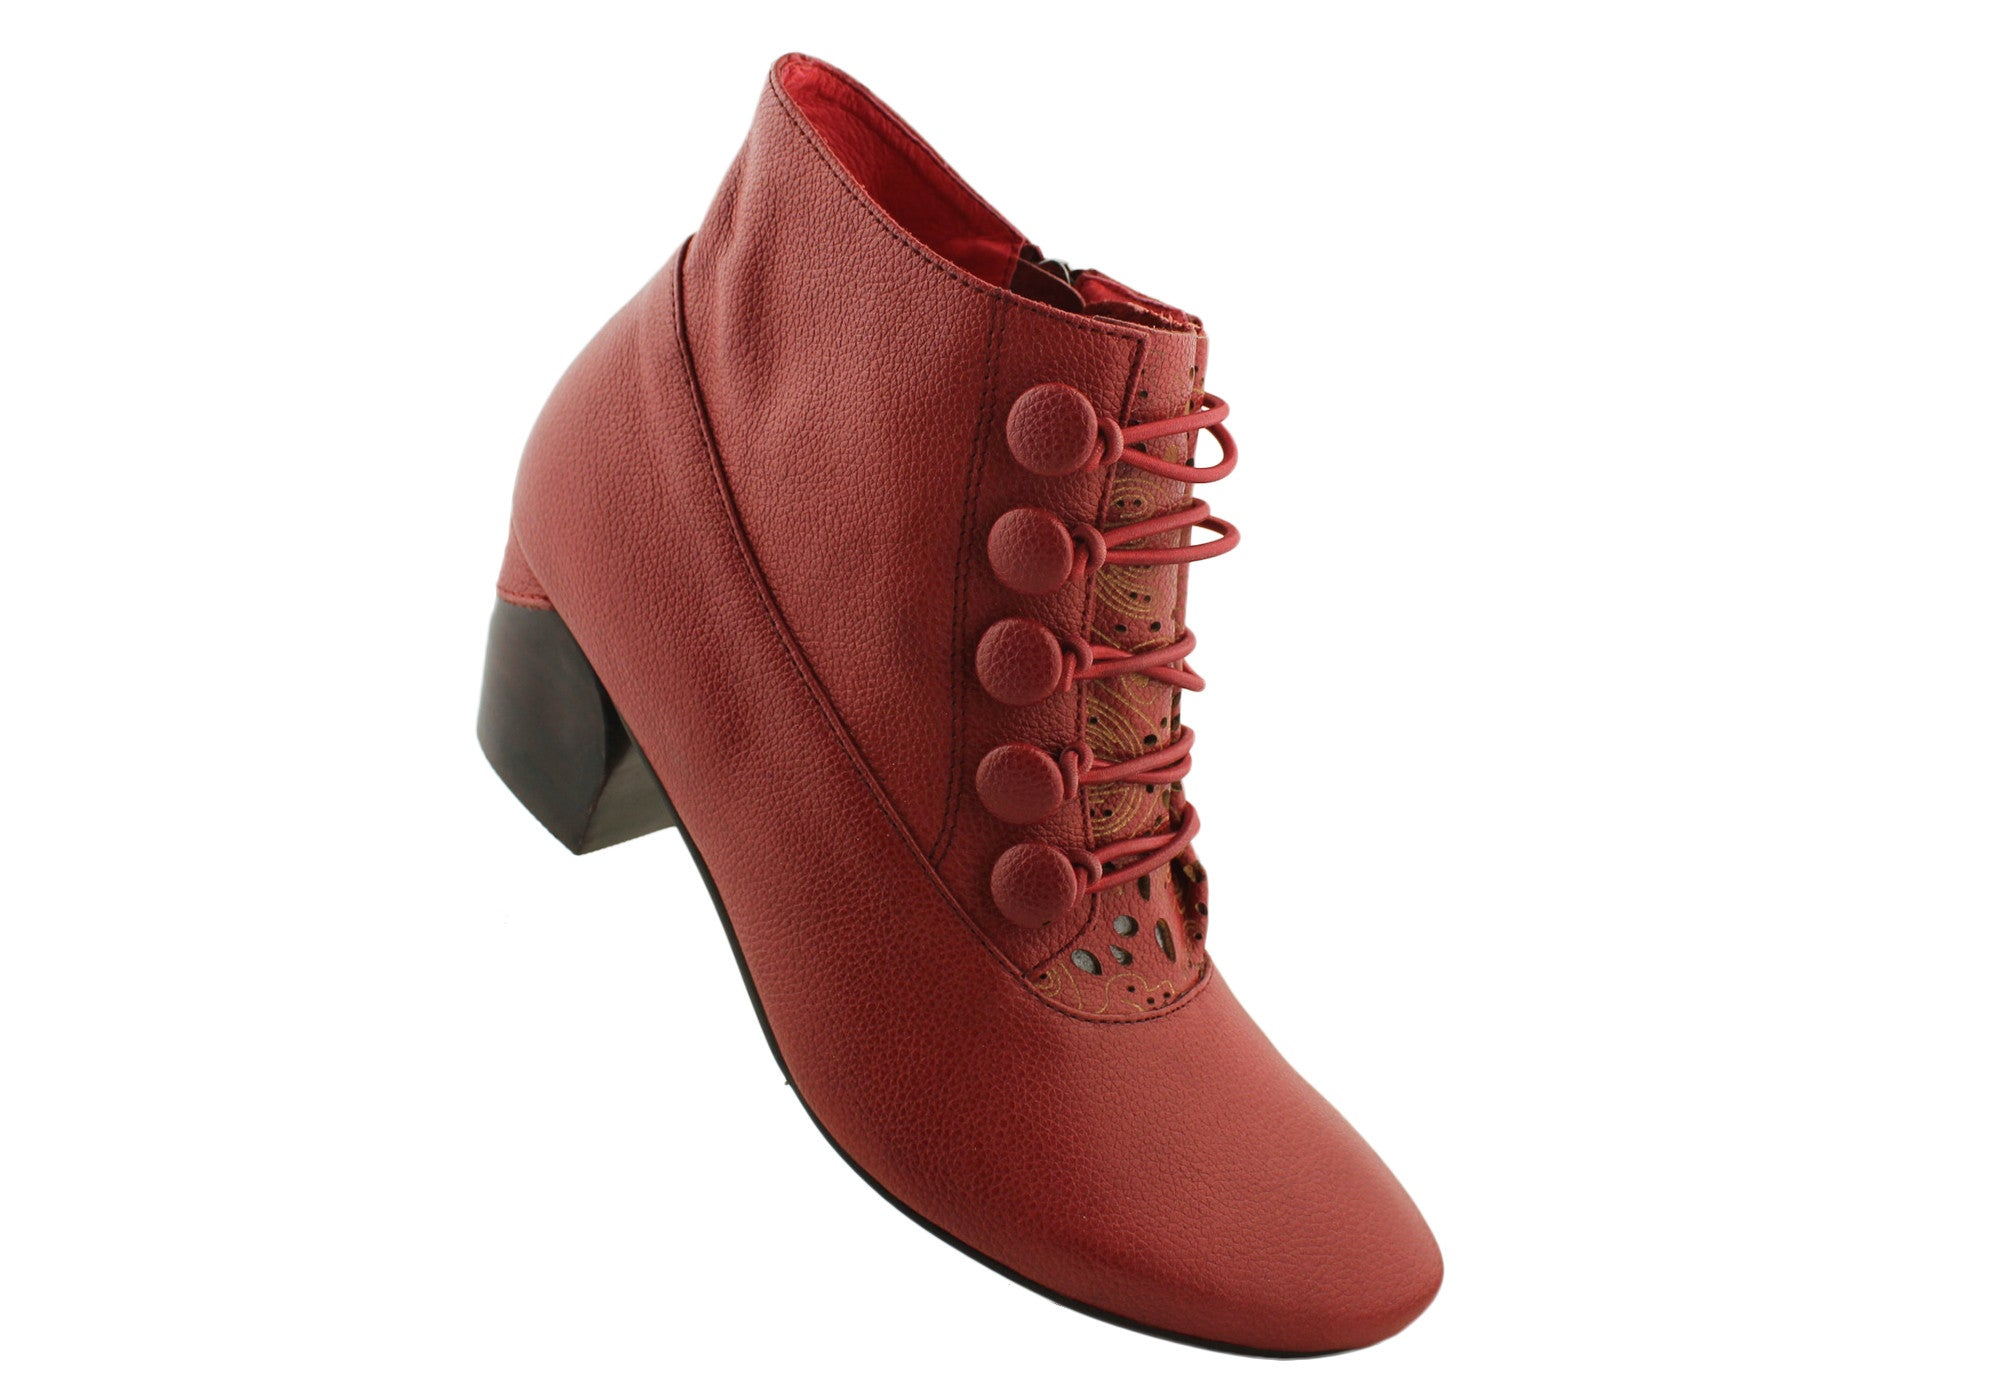 Christiano Bellaria Design Unity2 Womens Leather Ankle Boots